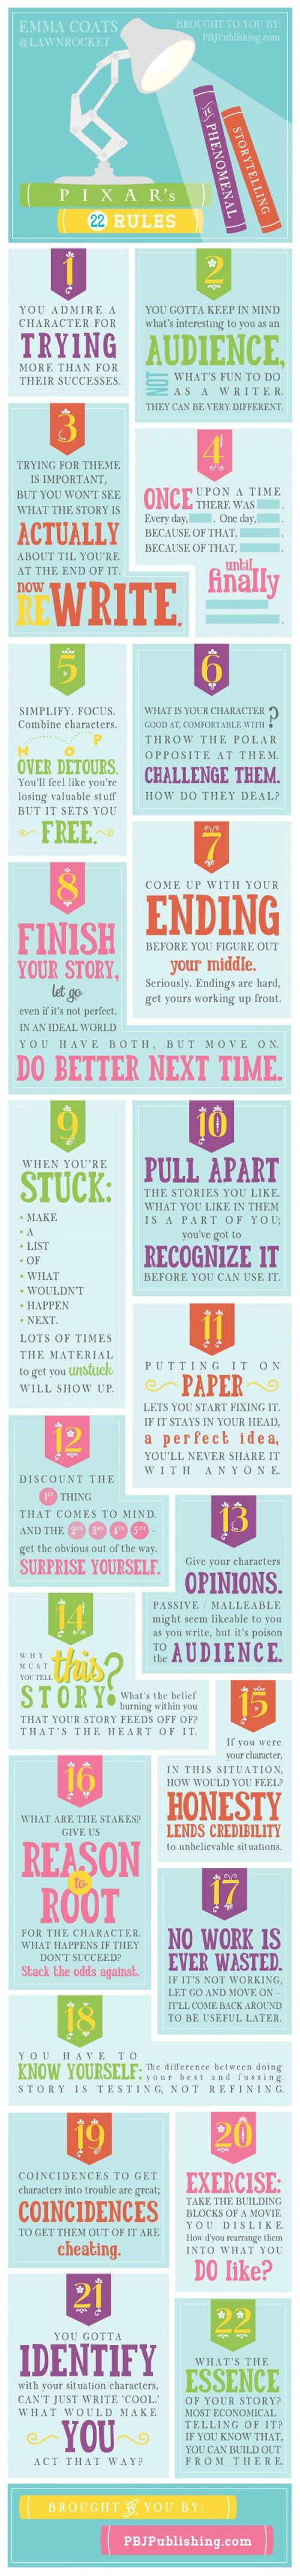 storytelling rules according to pixar ... seems like good rules for a lot of things!